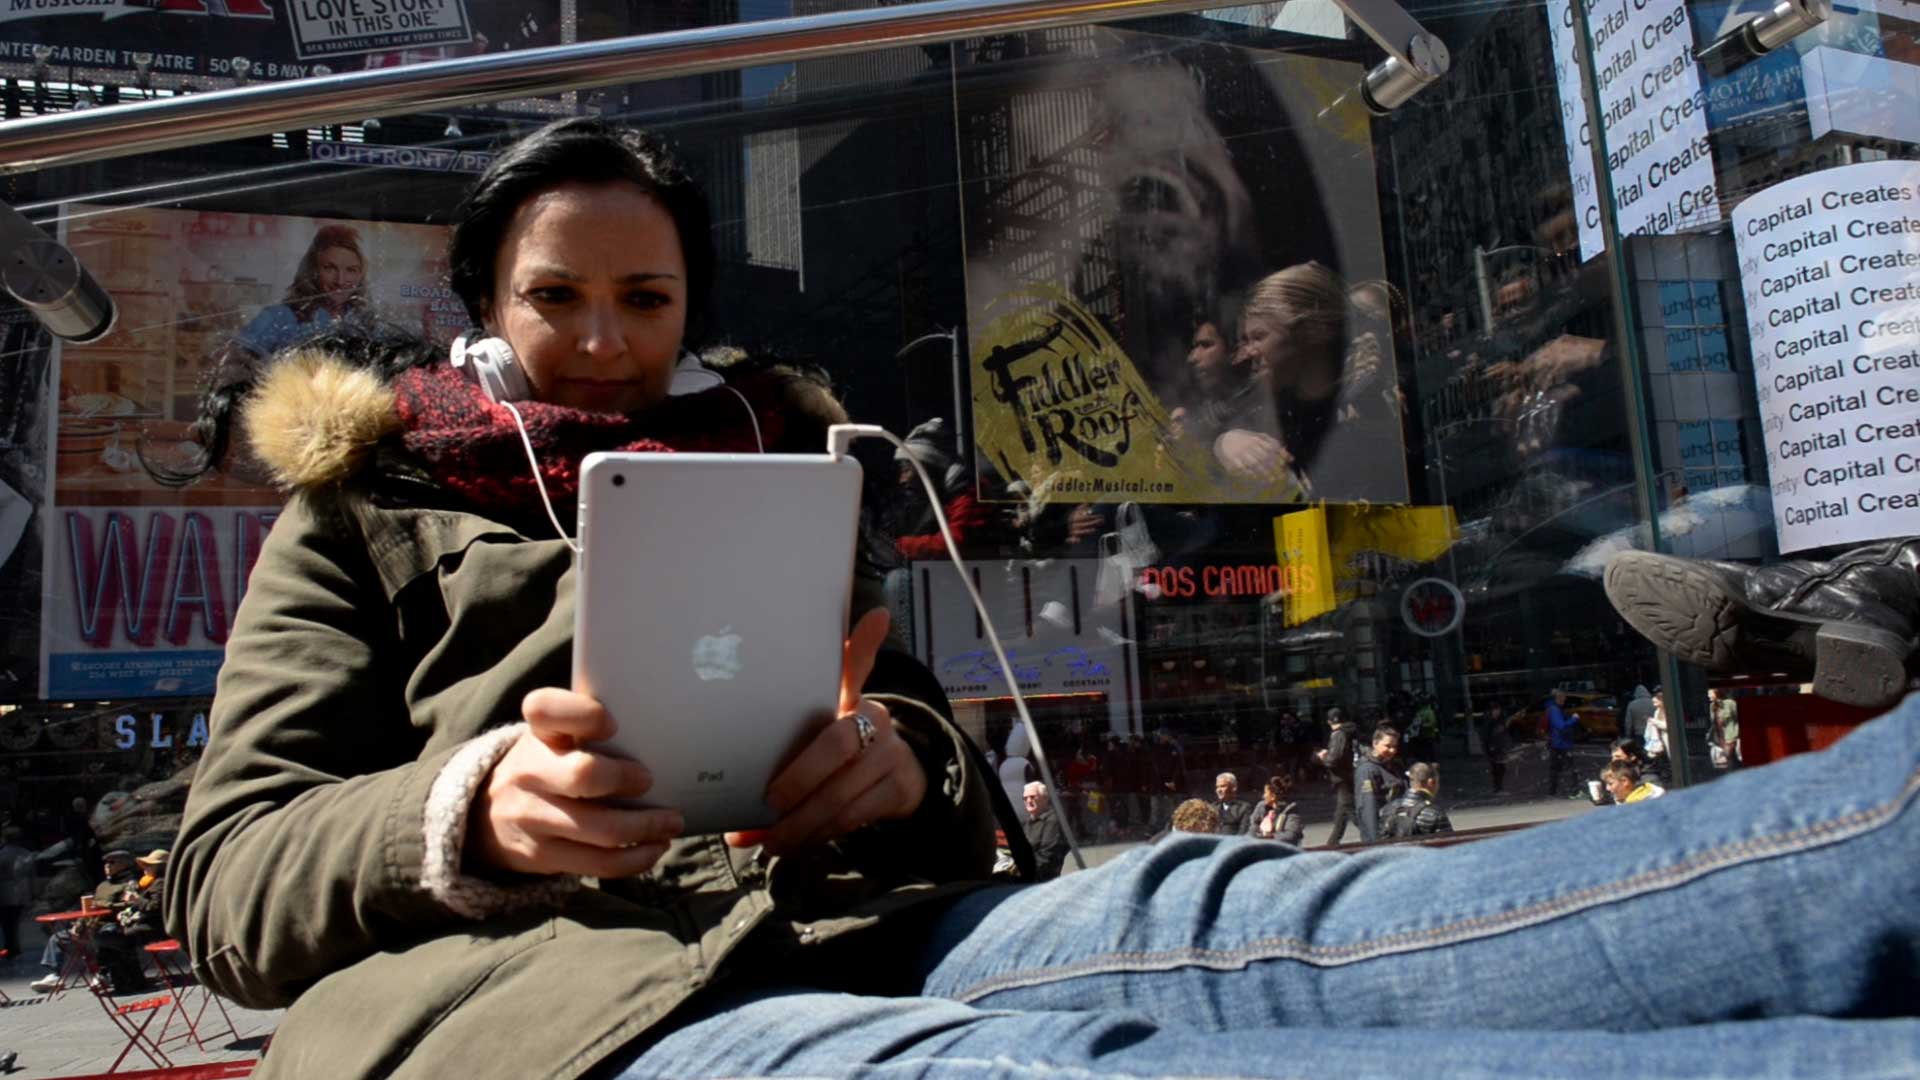 A woman holds an iPad in Times Square, N.Y.